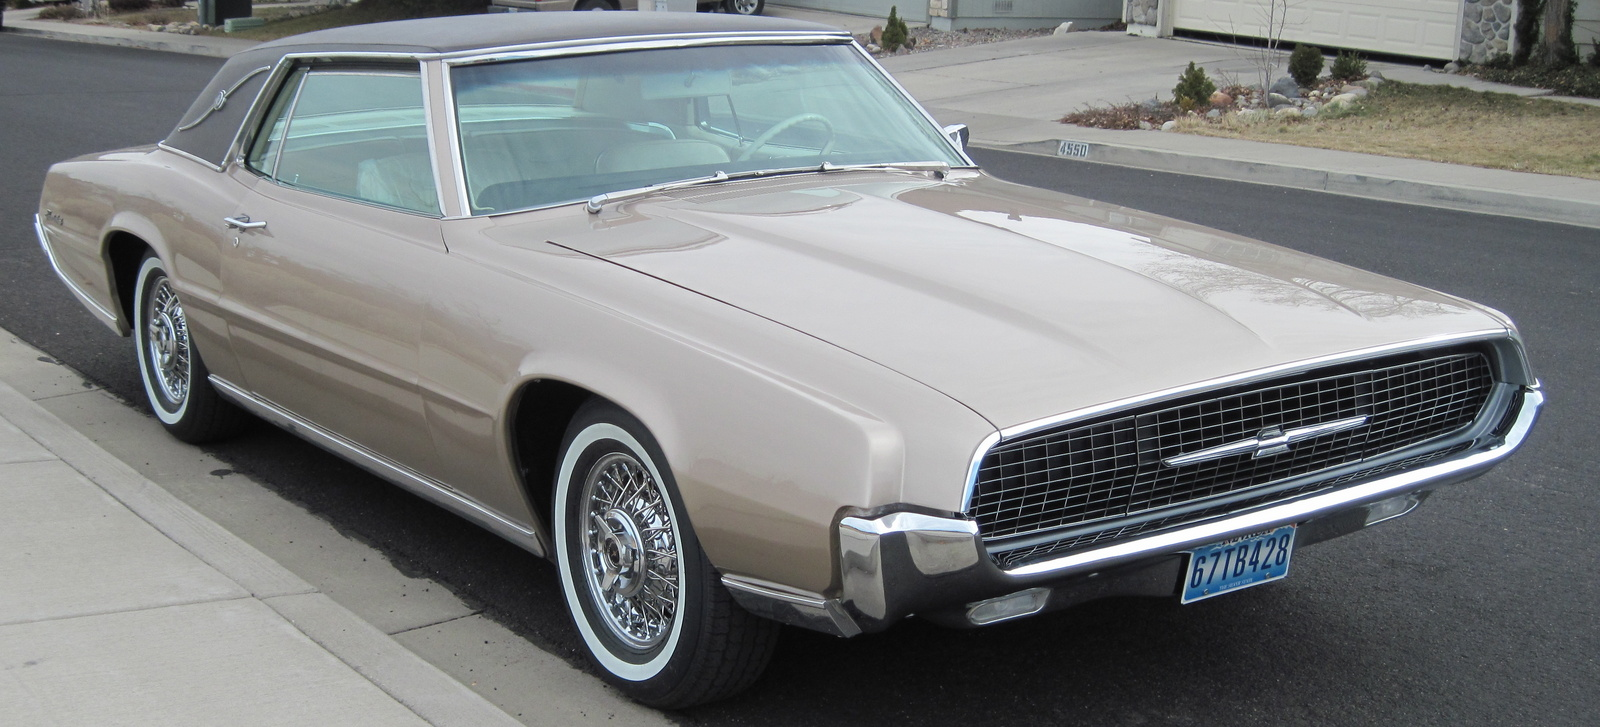 Ford thunderbird 1967 picture 2 of 2 front angle image - Filename Pic 9064726878334996798 Jpeg